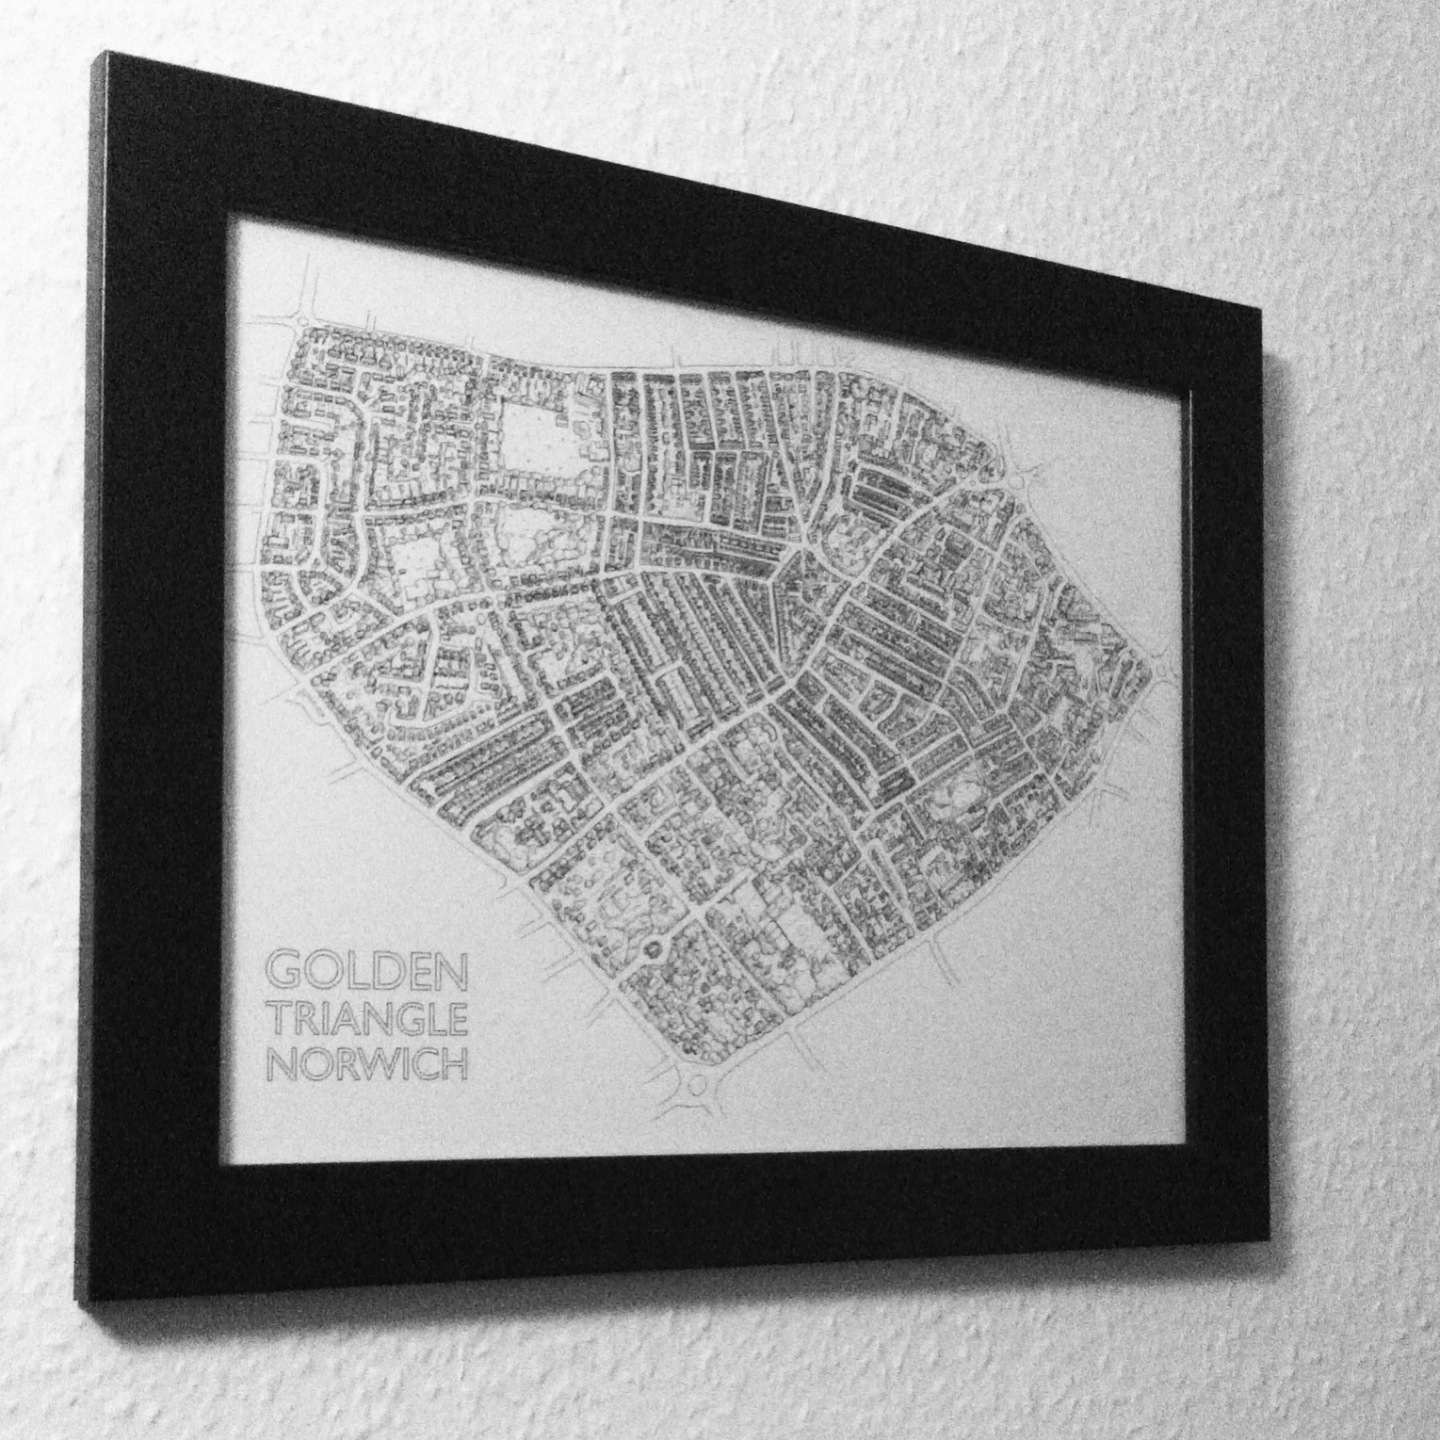 Illustrated Street map of the Golden Triangle area of Norwich Norfolk, by map illustrator Fiona Gowen